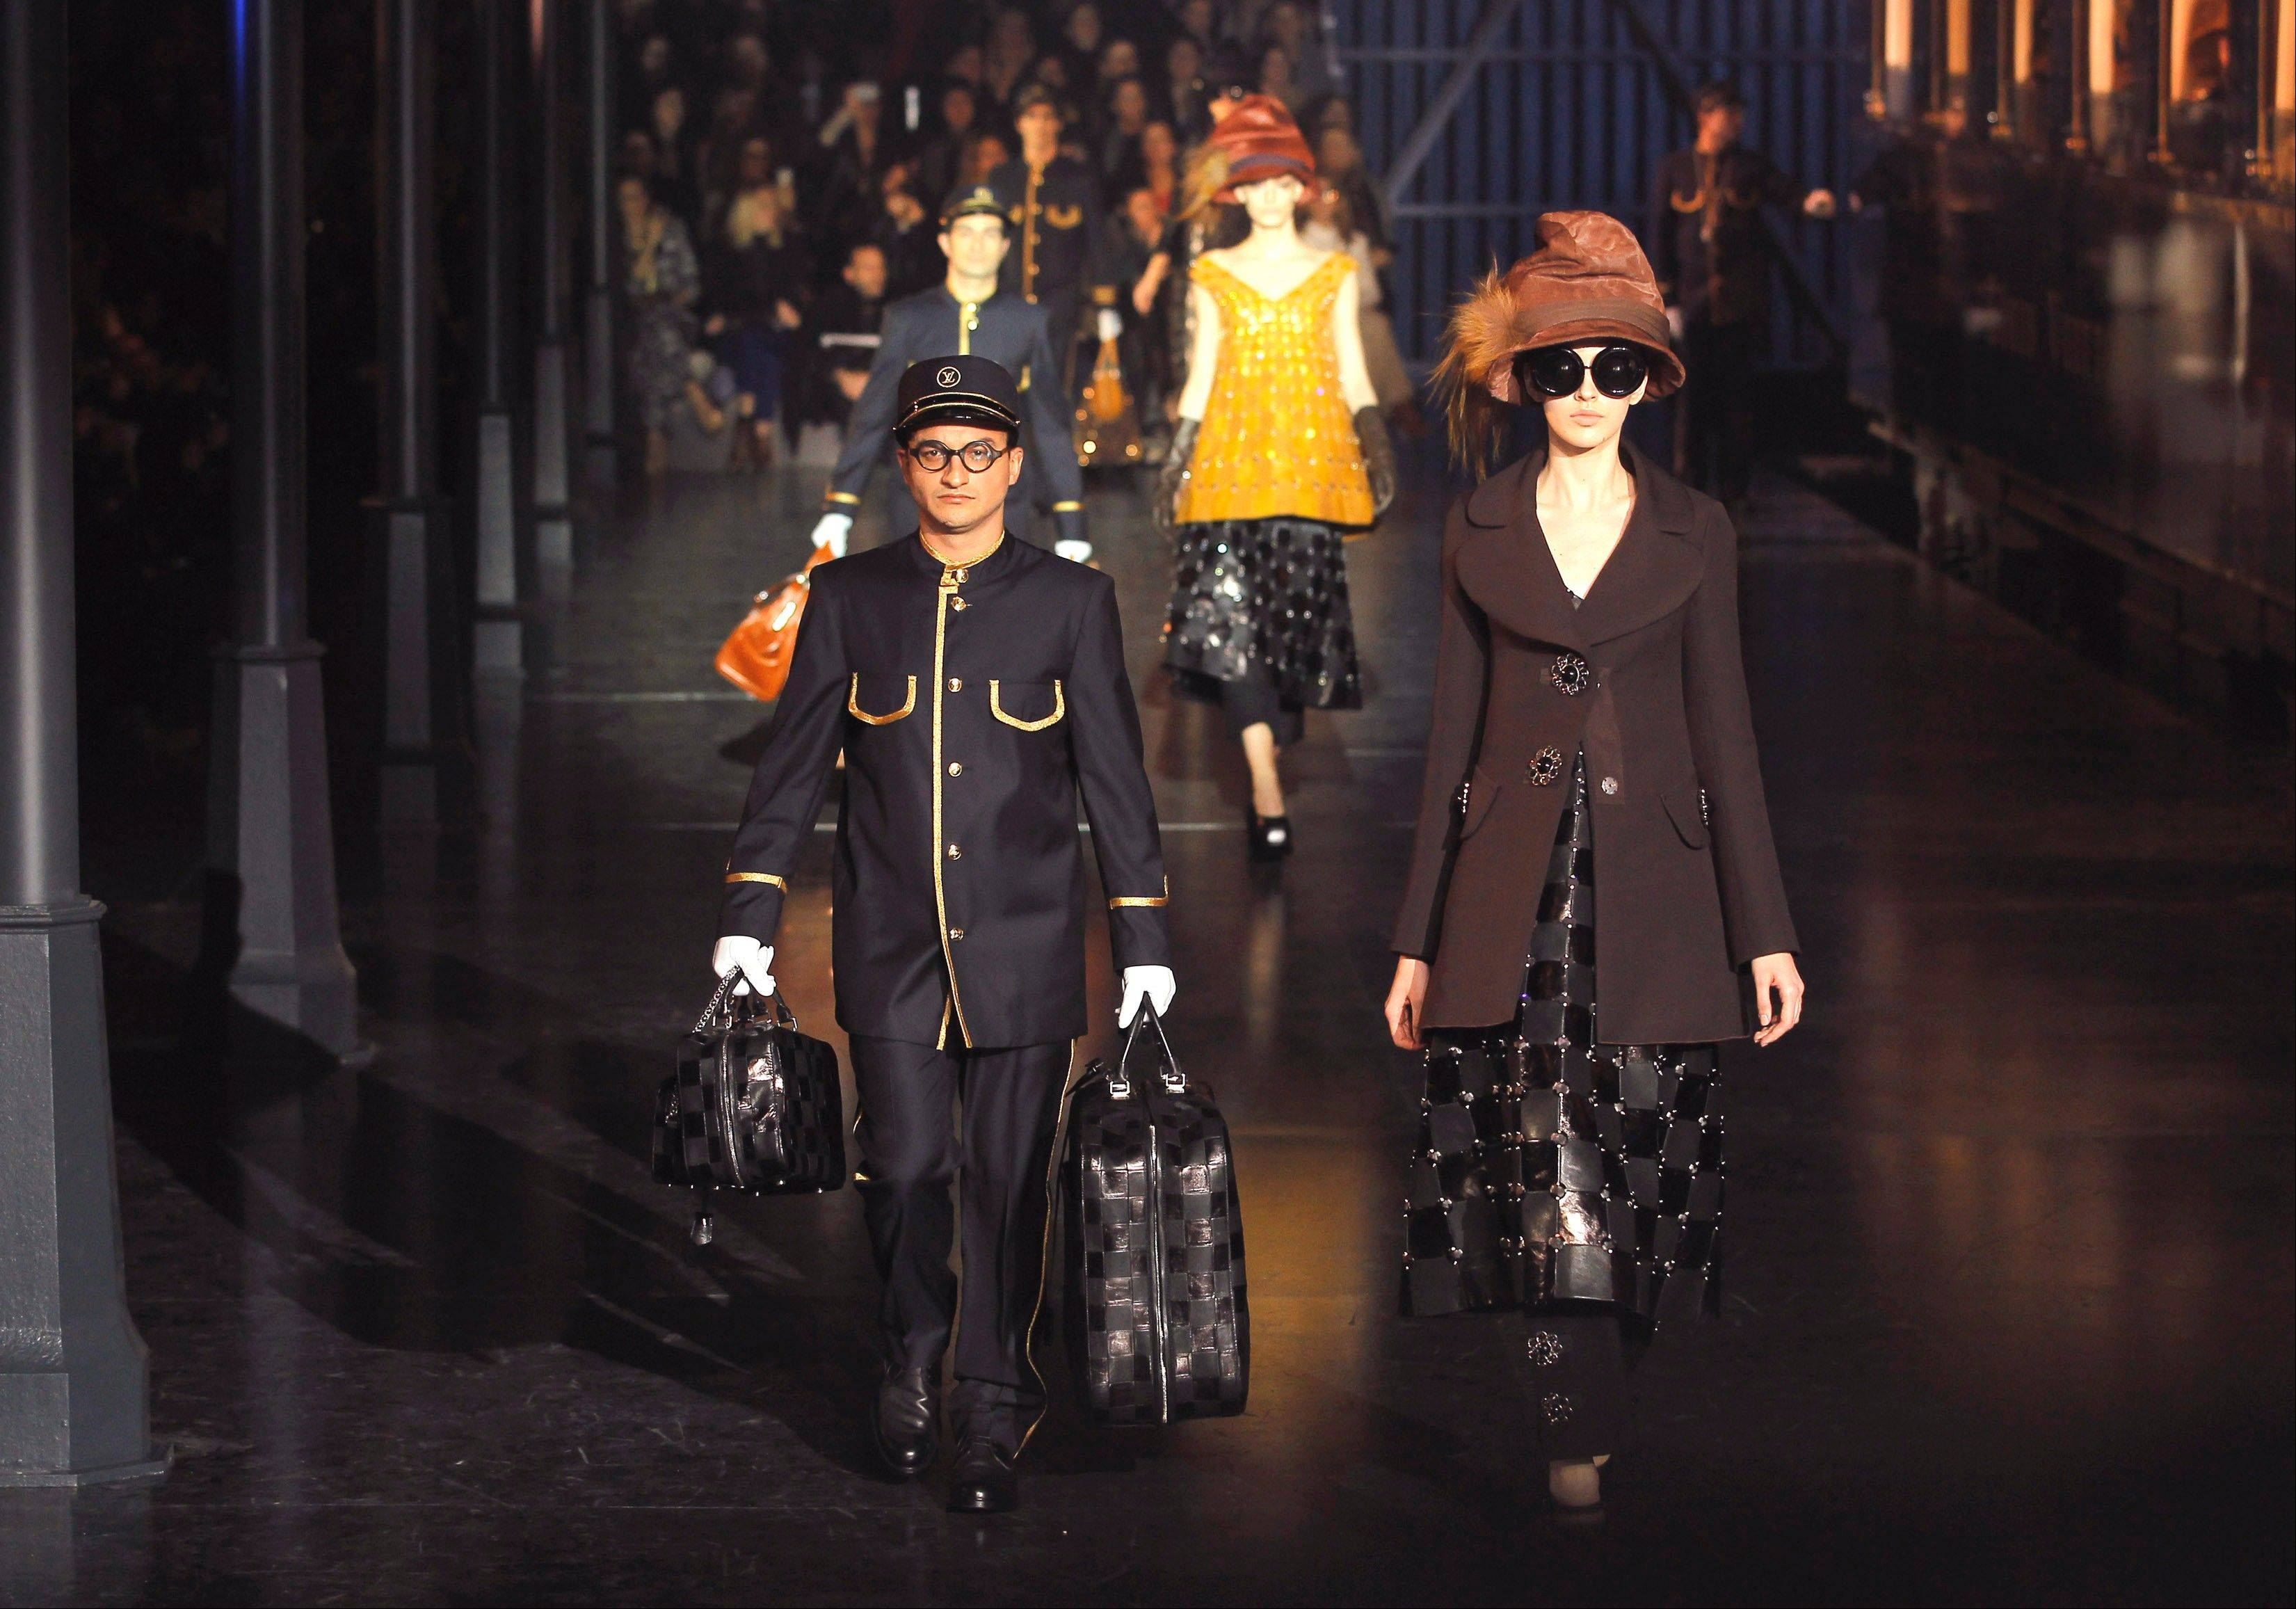 A model wears a creation by U.S fashion designer Marc Jacobs for his Louis Vuitton collection, Women's Fall-Winter, ready-to-wear 2013 during Paris Fashion week. Polished sophistication is the new trend after previous trends that have alternately favored bohemian, aggressive and blingy looks.